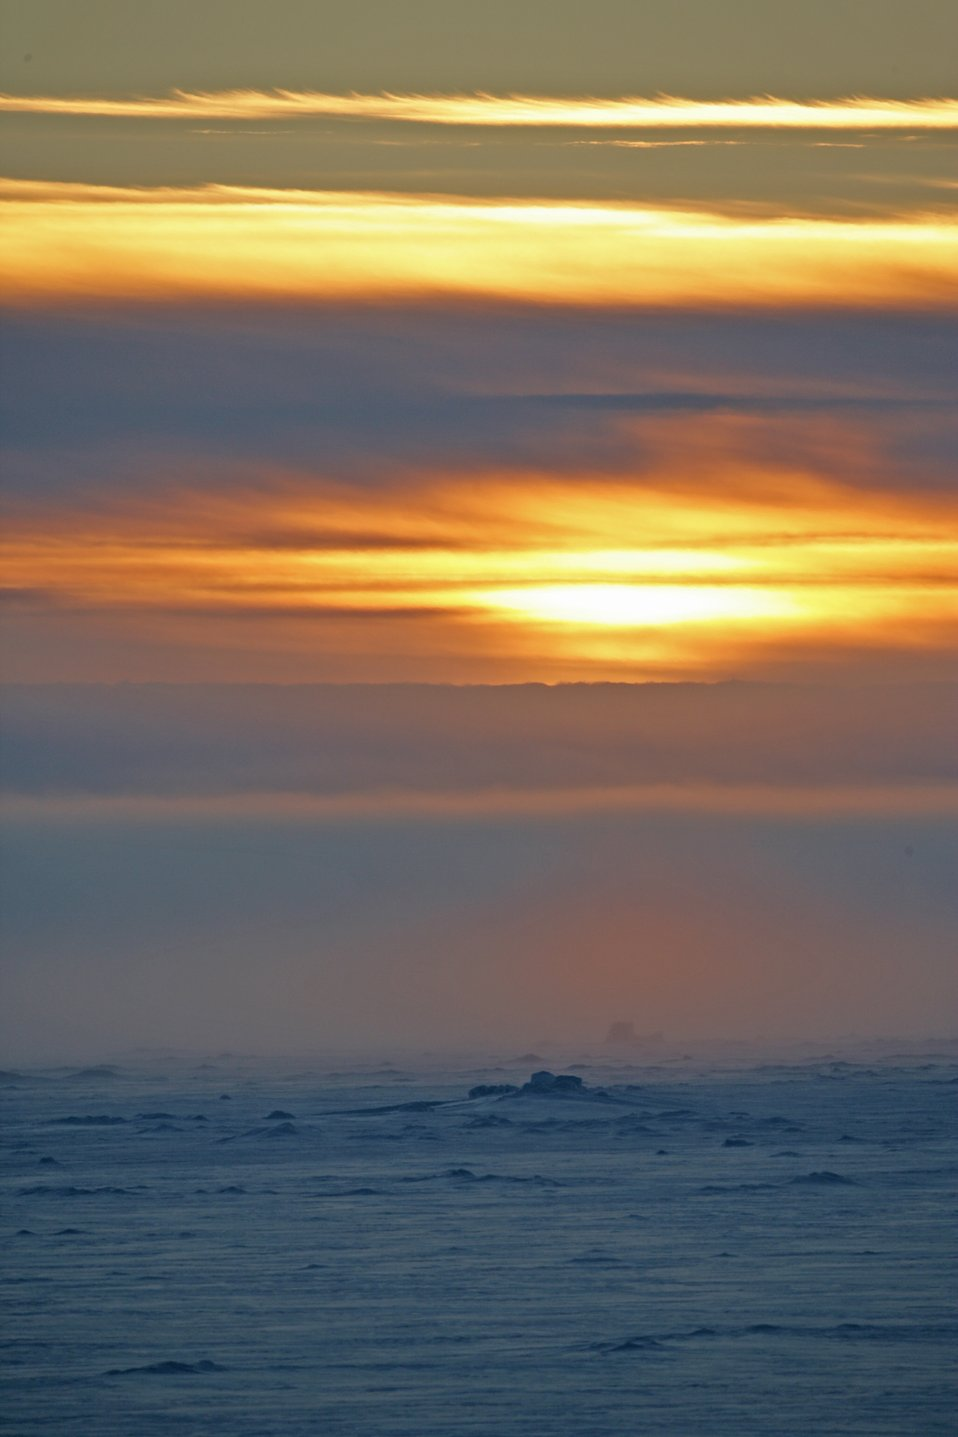 Arctic sunset. See: http://www.naturalsciences.org/education/arctic/